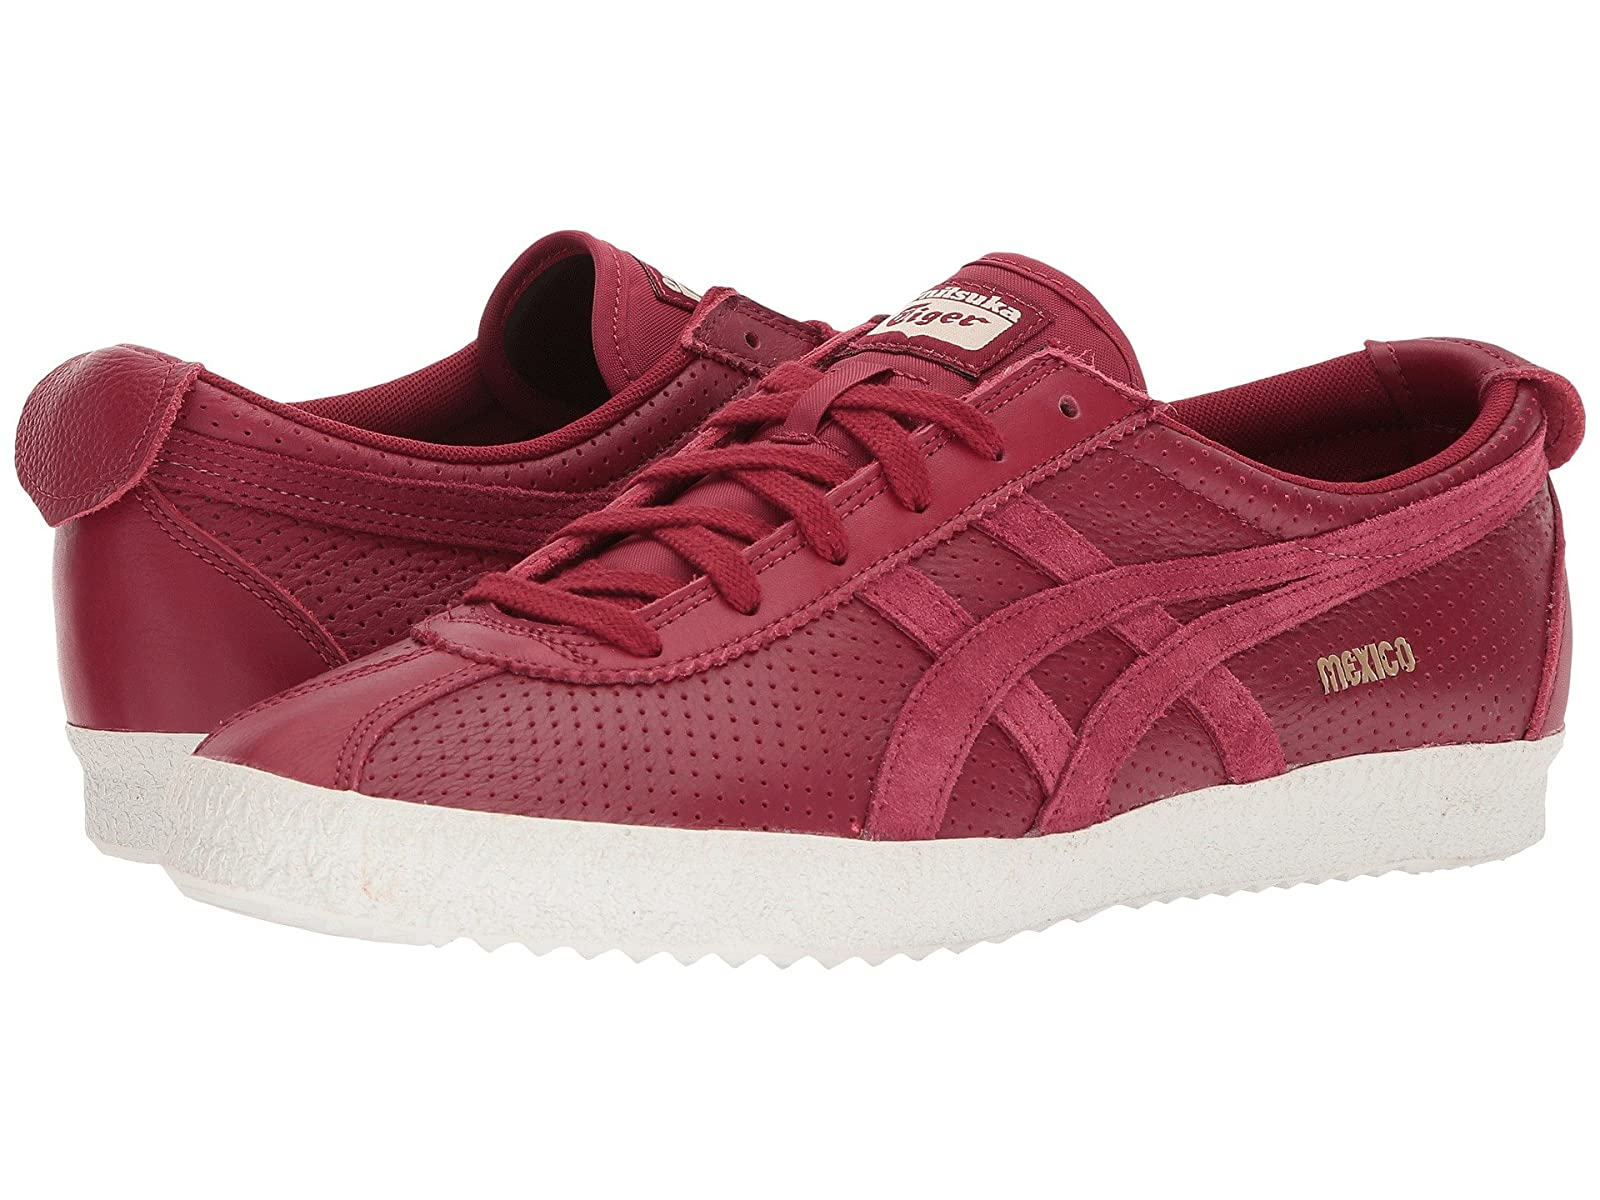 Onitsuka Tiger by Asics Mexico DelegationAtmospheric grades have affordable shoes